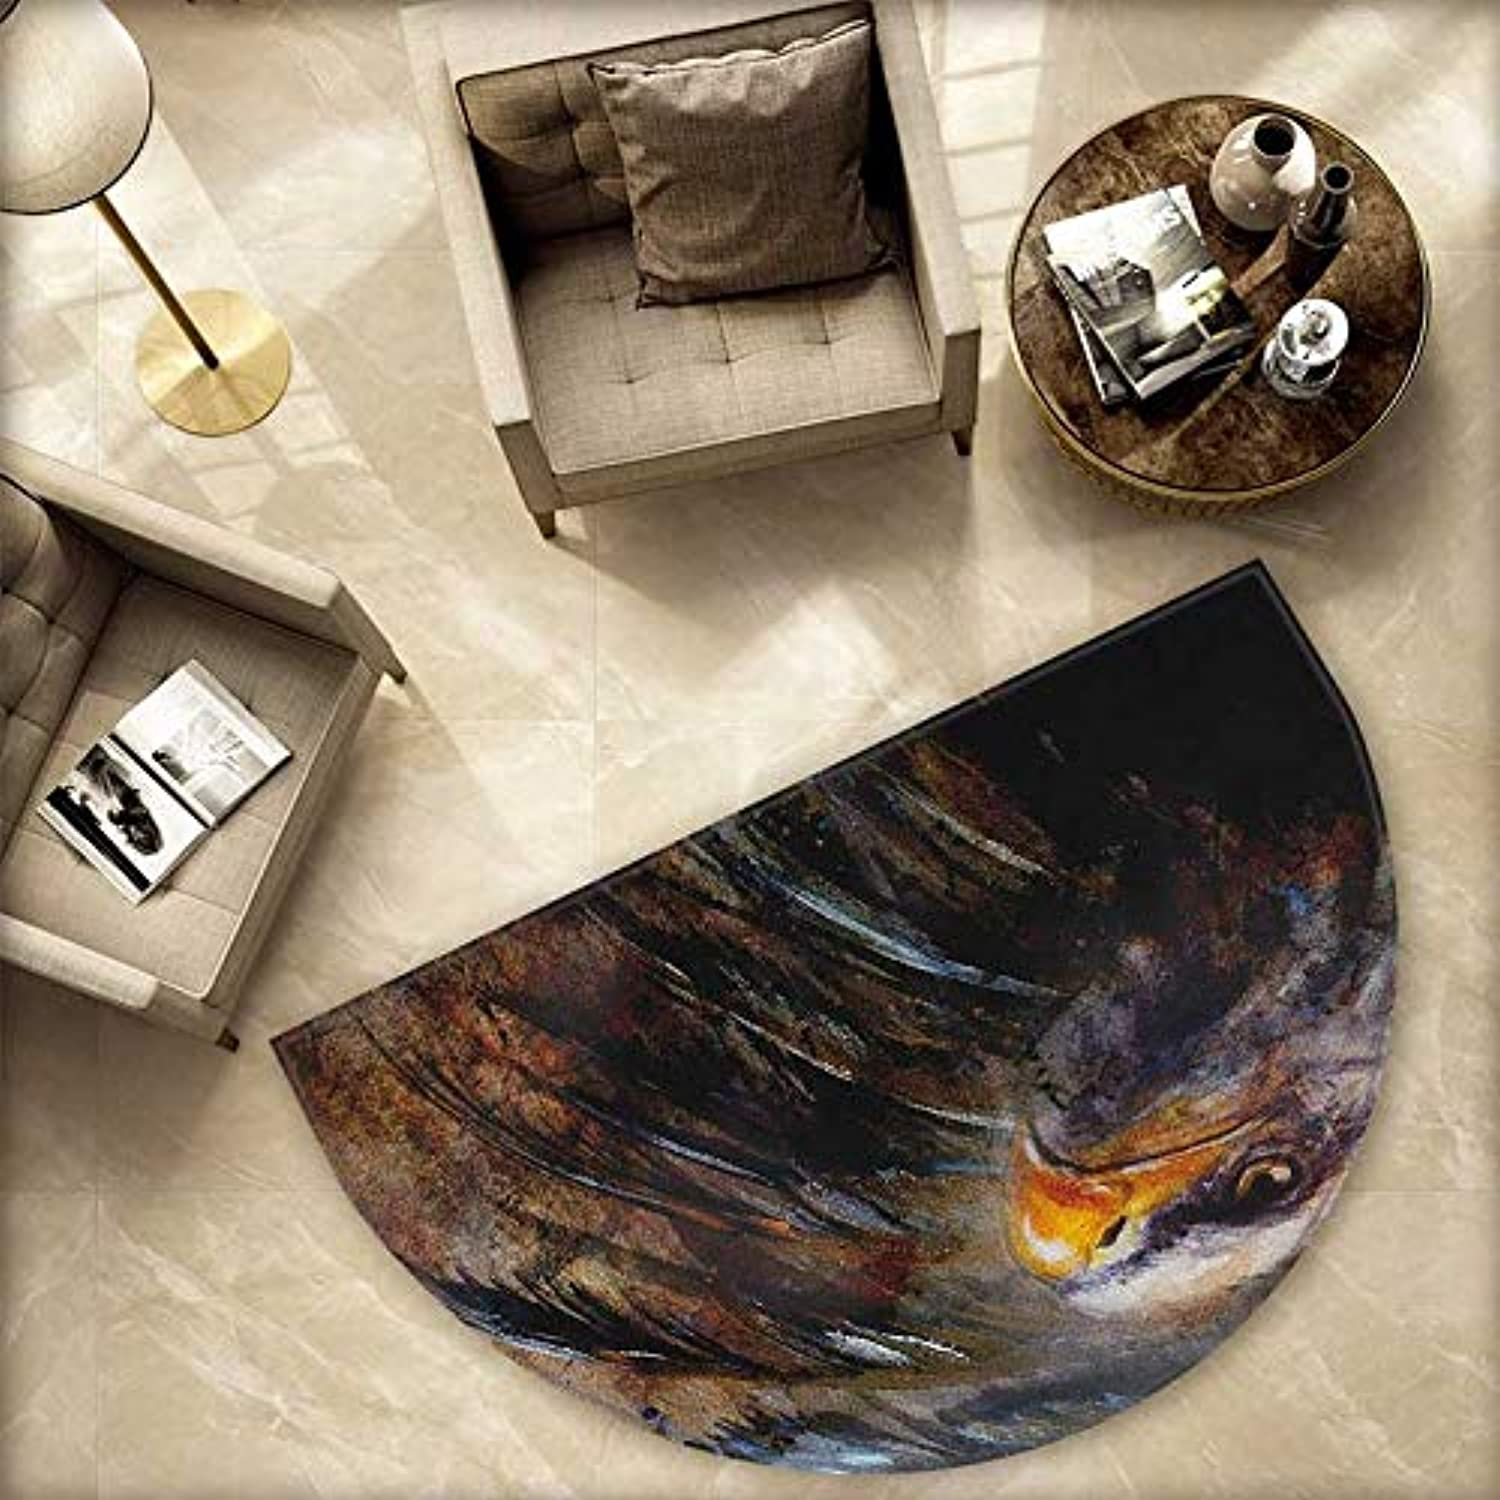 Eagle Semicircle Doormat Painting Style Bird with Black Feathers on Abstract Backdrop Symbol of USA Halfmoon doormats H 78.7  xD 118.1  Brown Black orange